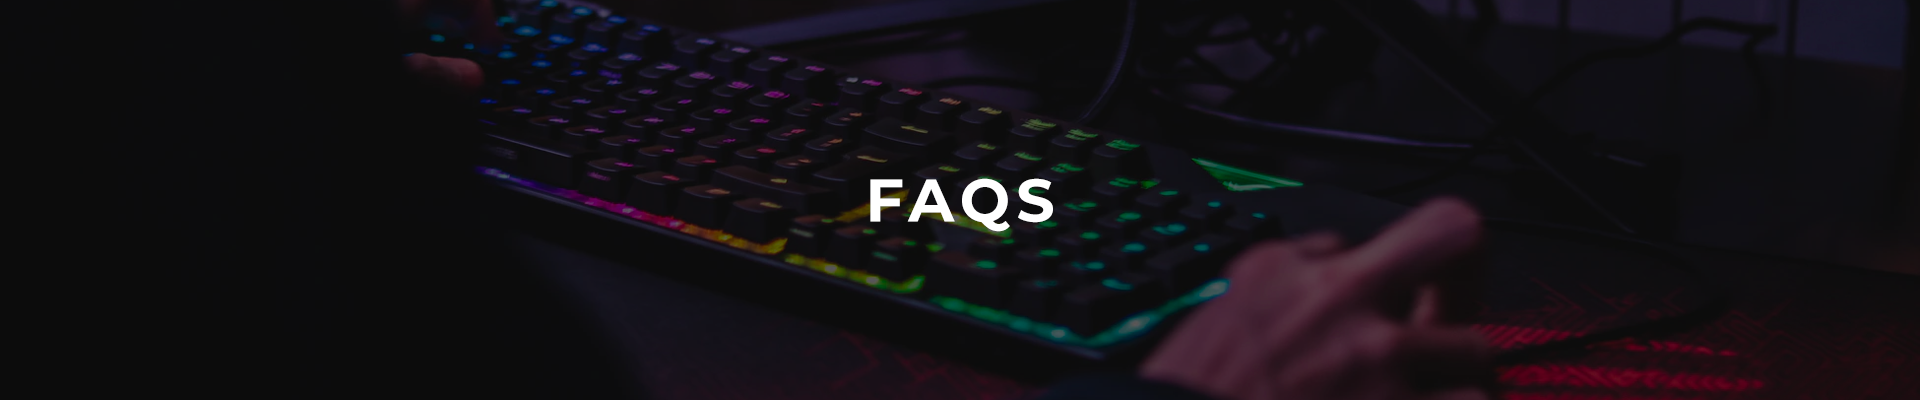 60brand custom gaming mousepad faqs